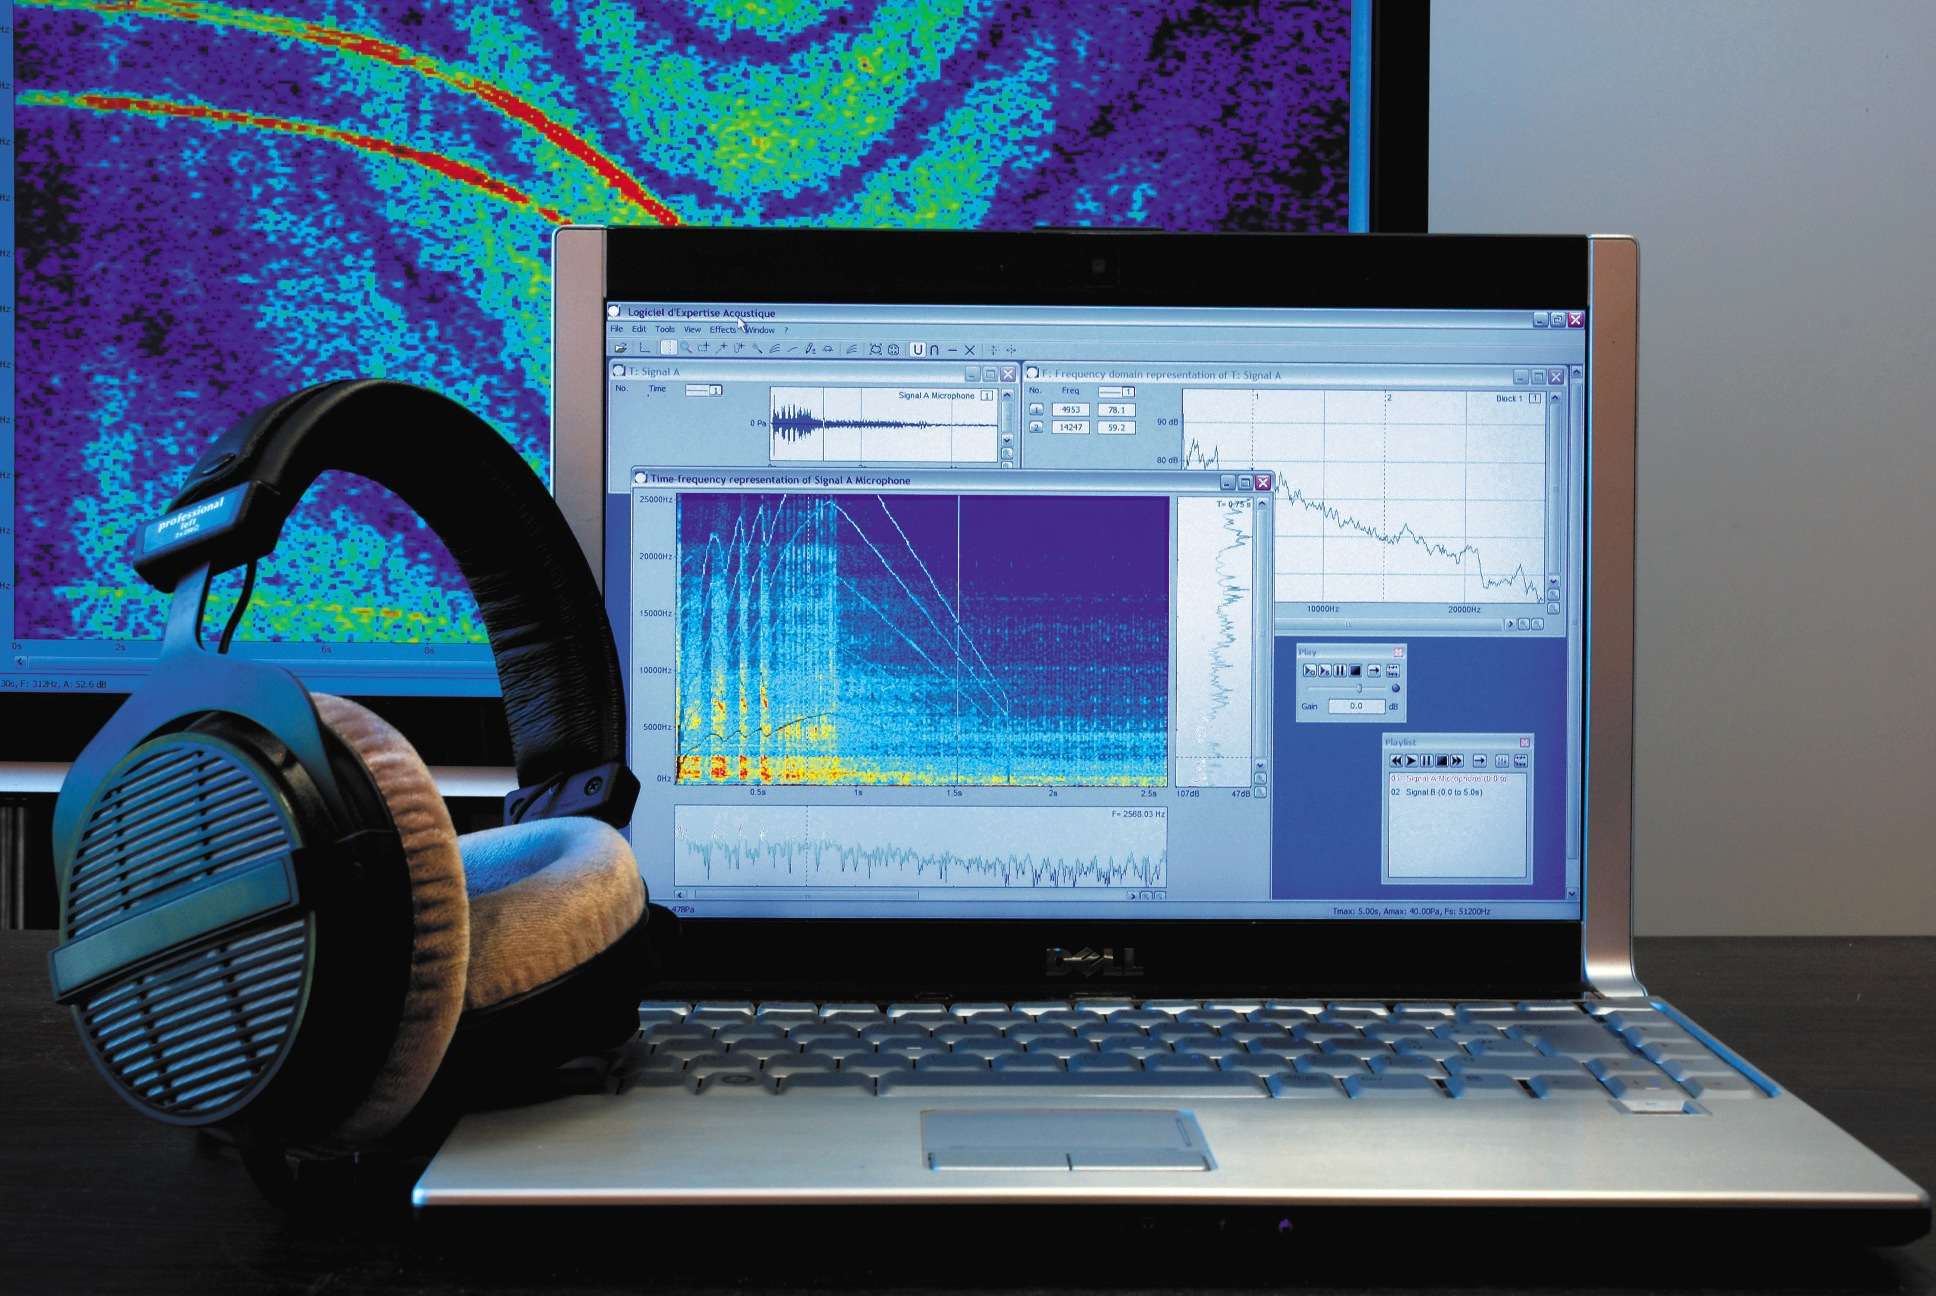 Sound and vibration analysis software